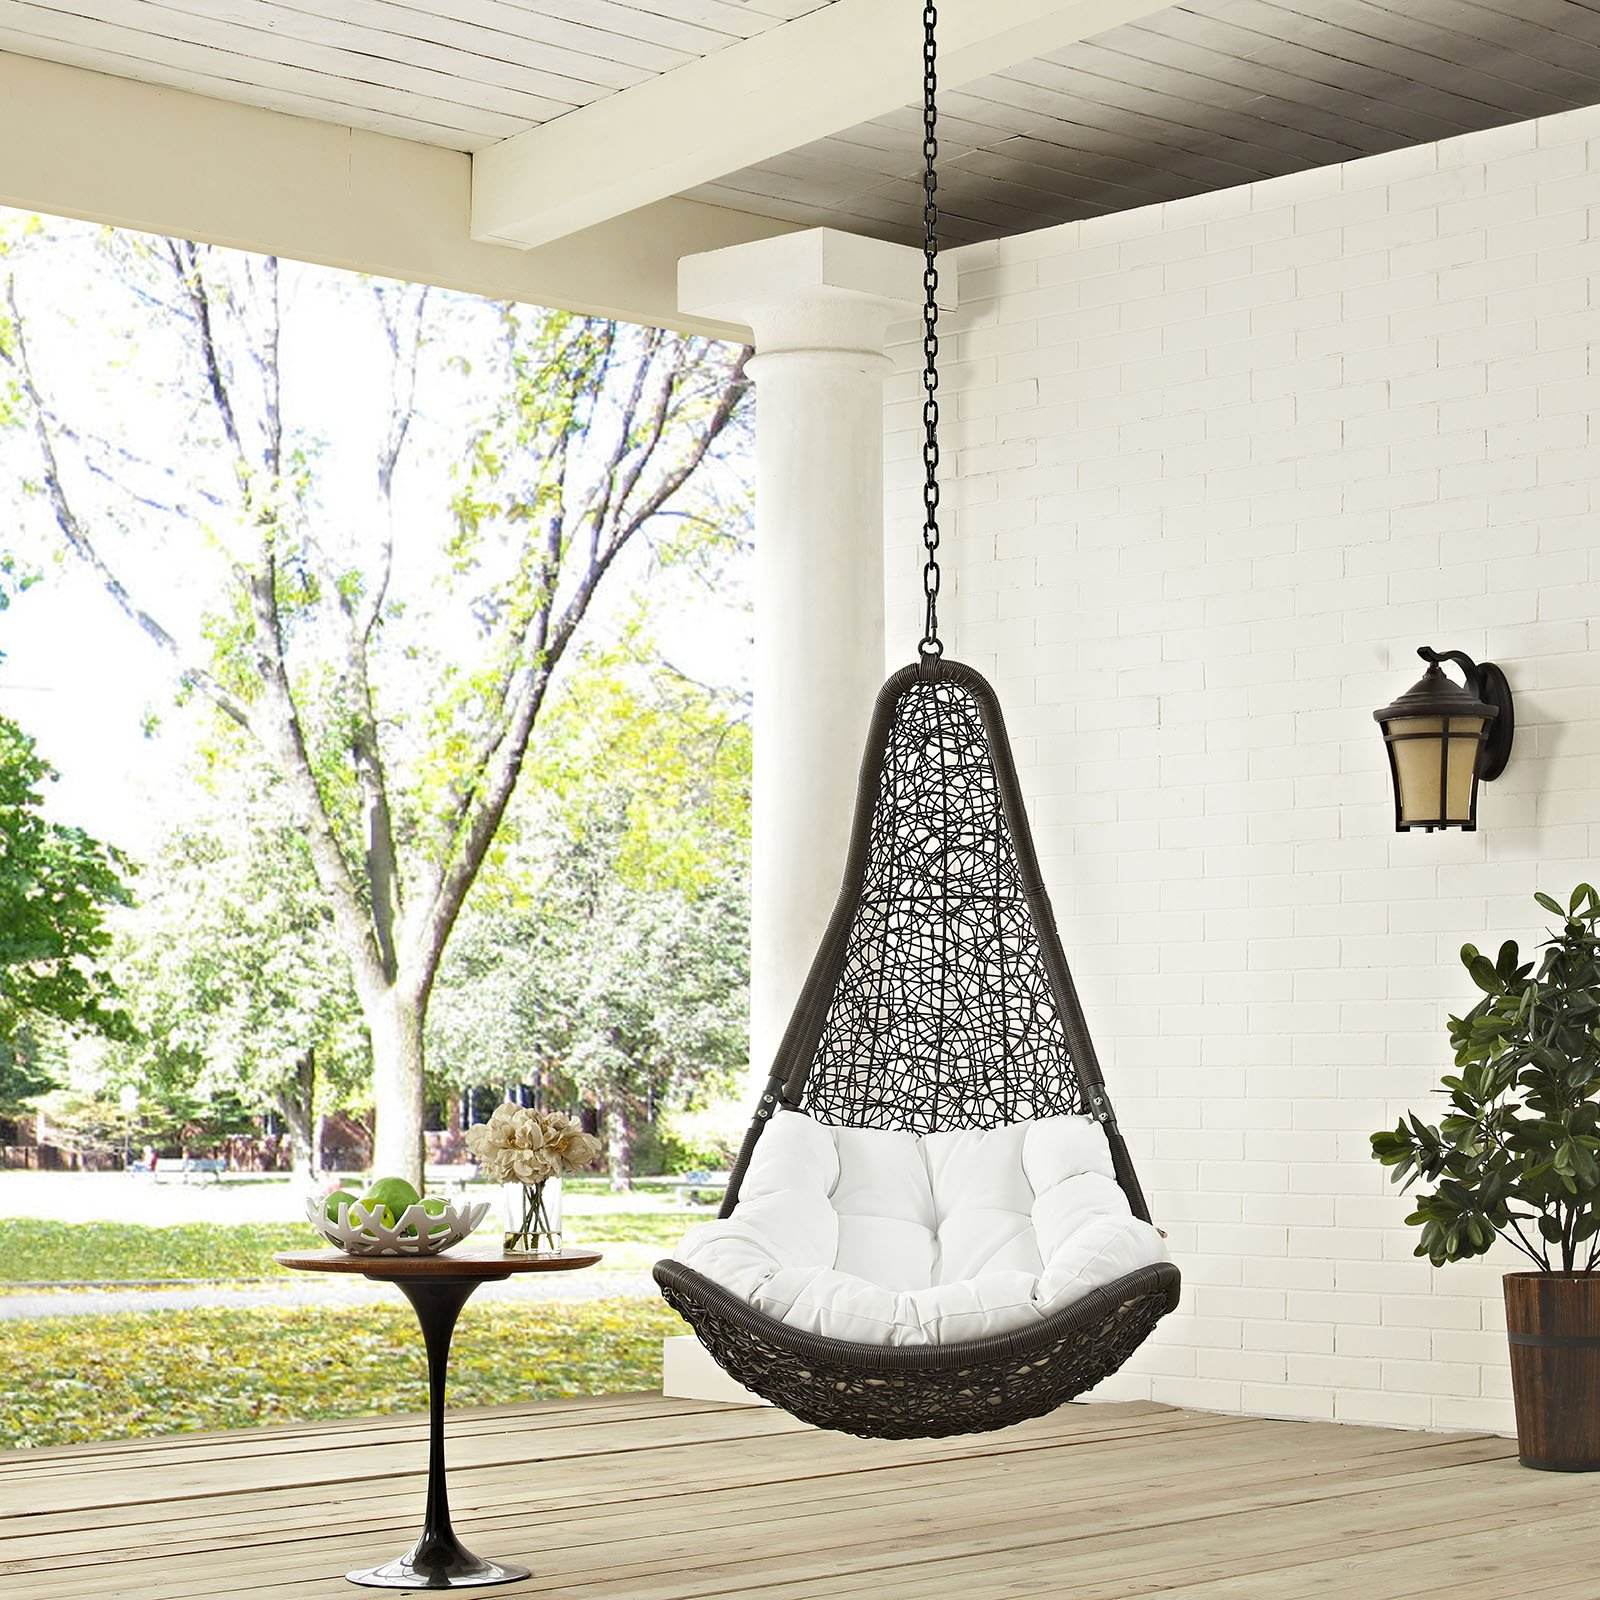 Modway EEI-2657-GRY-WHI-SET Abate Wicker Rattan Outdoor Patio Balcony Porch Lounge Swing Chair Set with Hanging Steel Chain Gray White by Modway